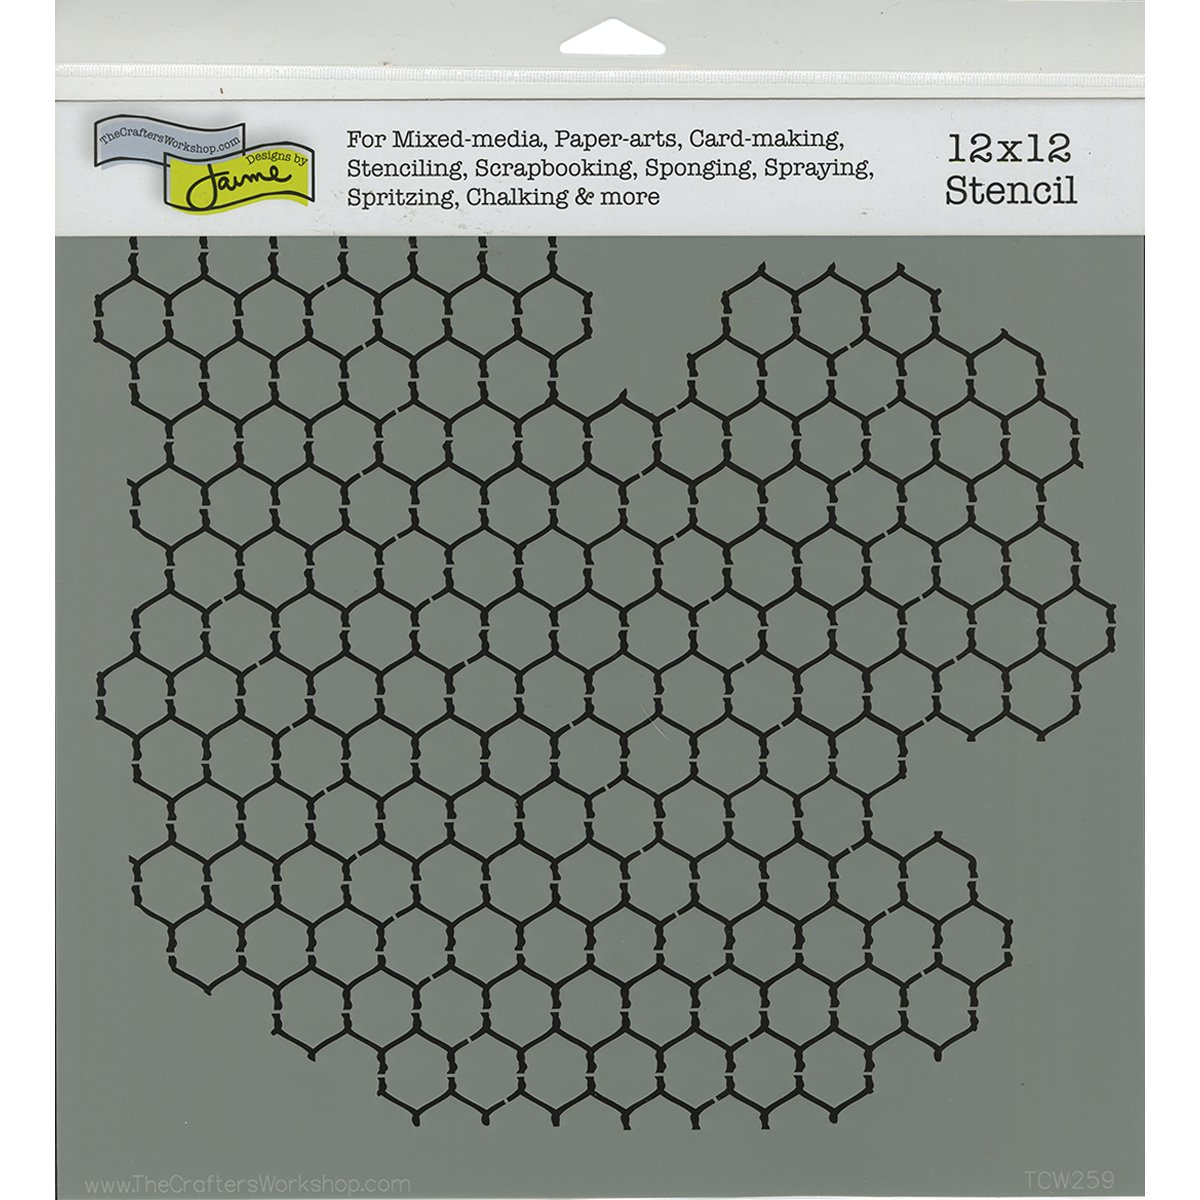 Amazon.com: Crafters Workshop TCW-259 Framing Template, 12 by 12 ...